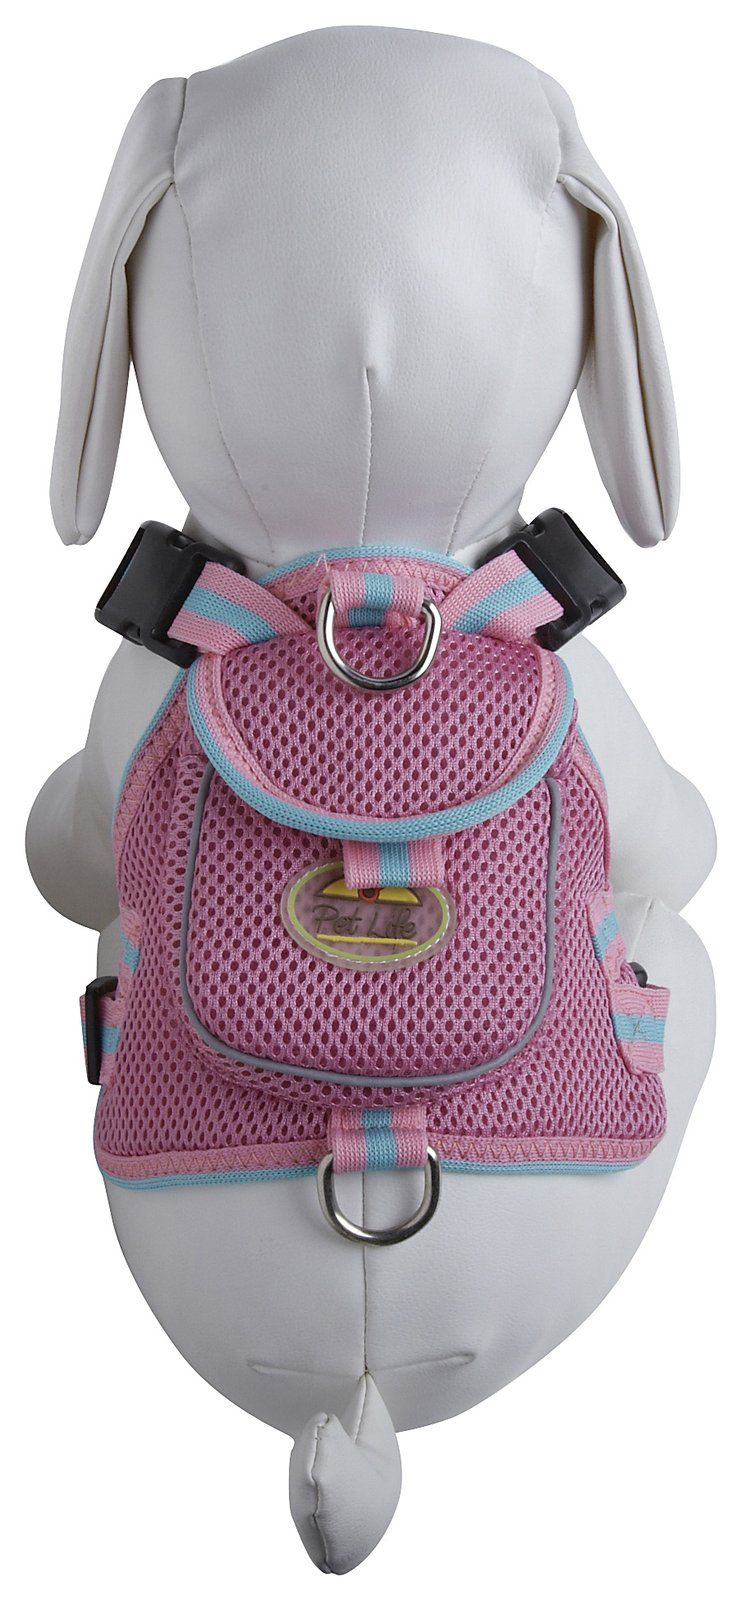 Pet Life Mesh Harness with Pouch - Free Shipping | ylee ...